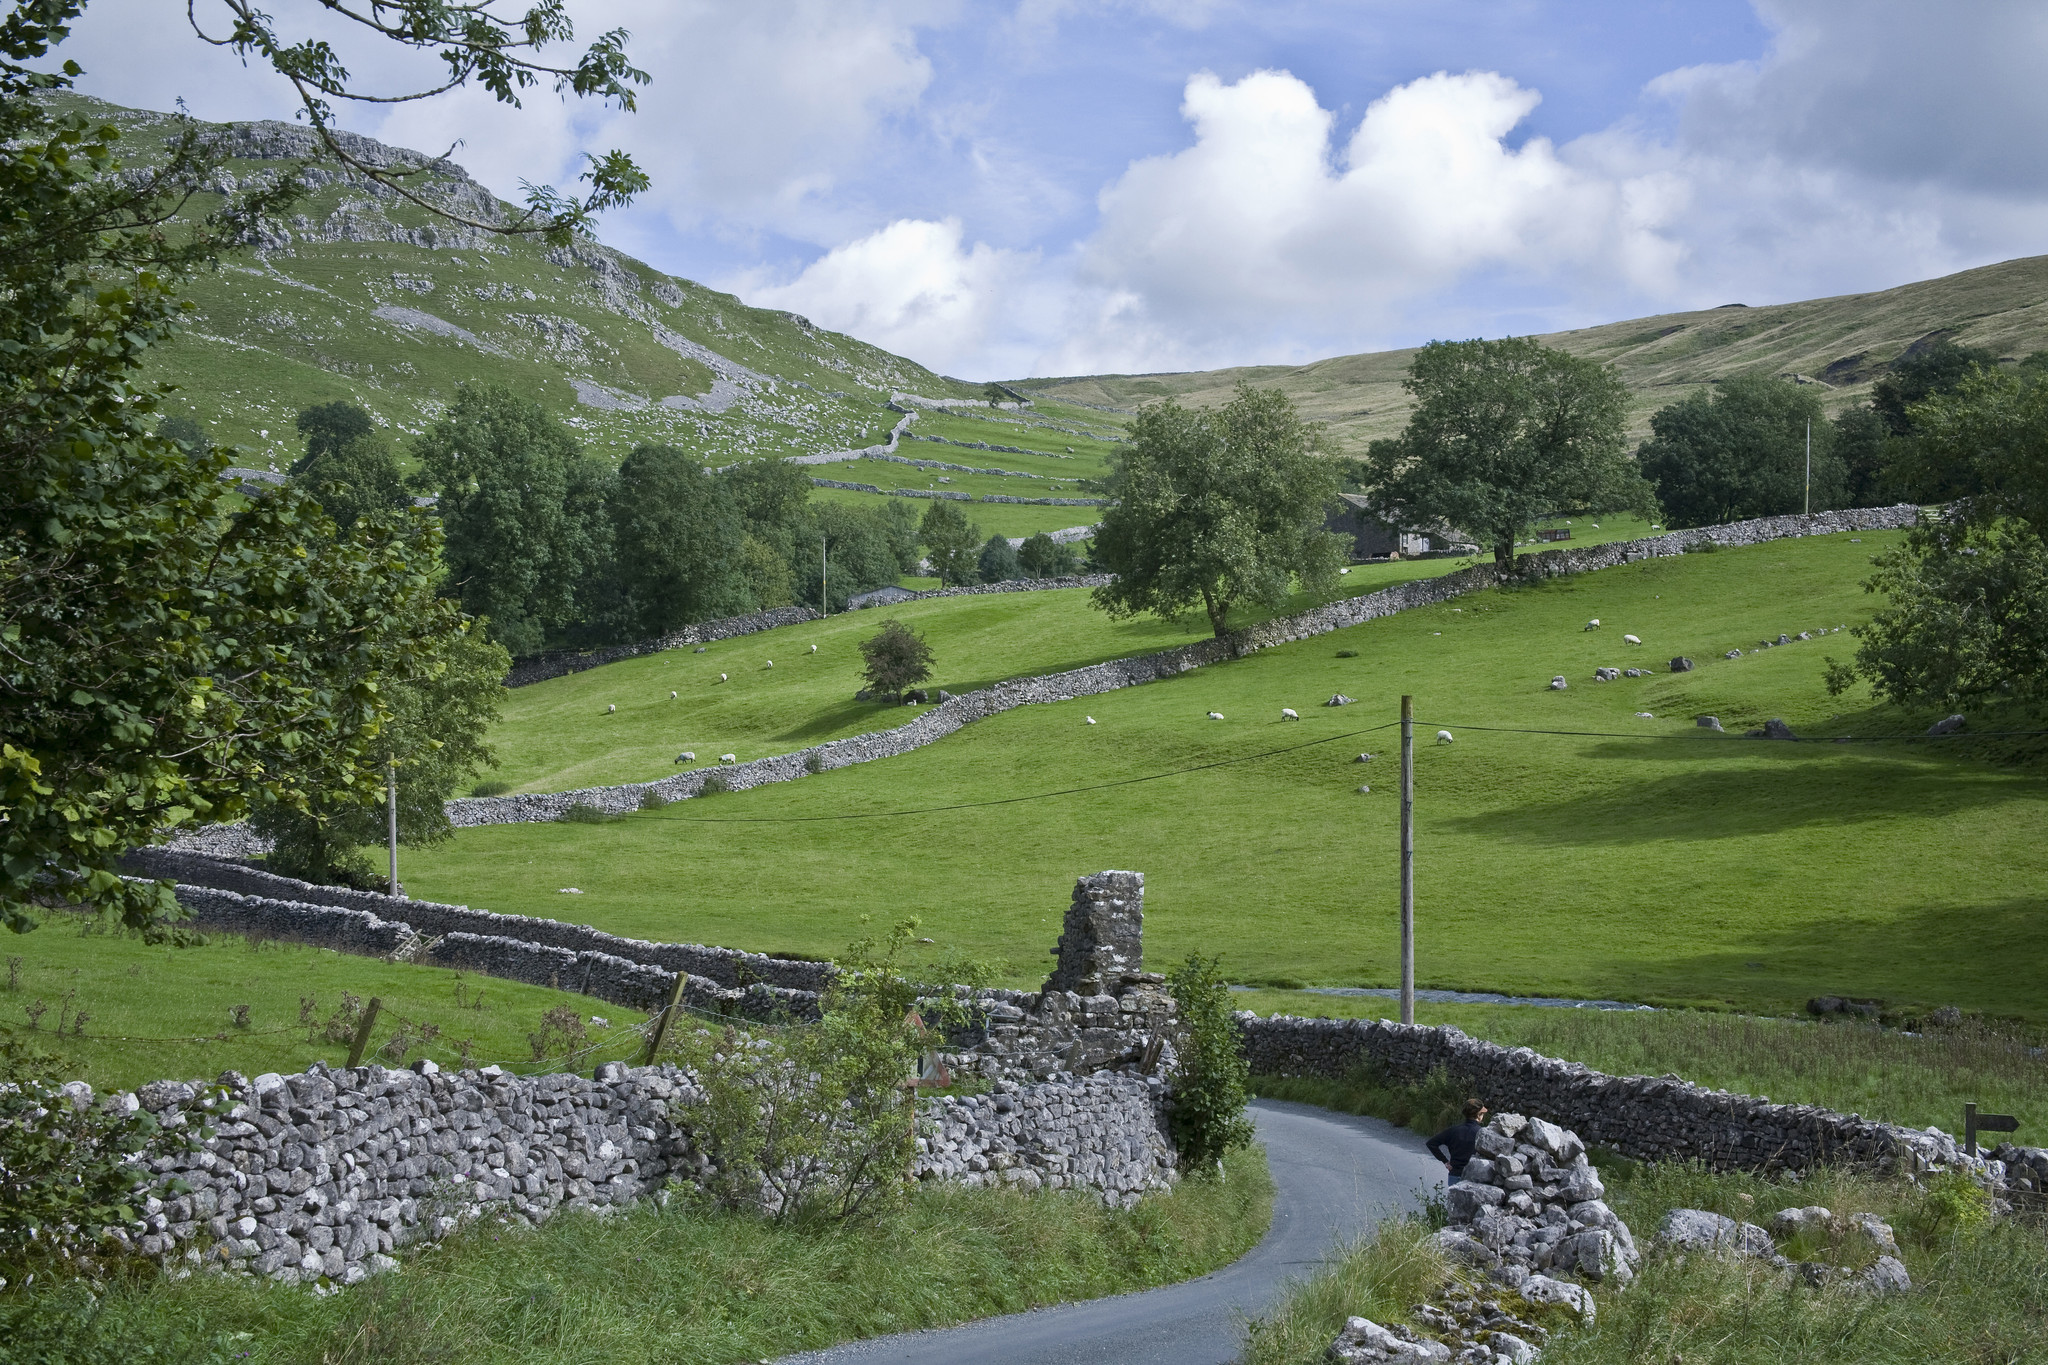 Englands green and pleasant land is a balm for travelers following country roads.